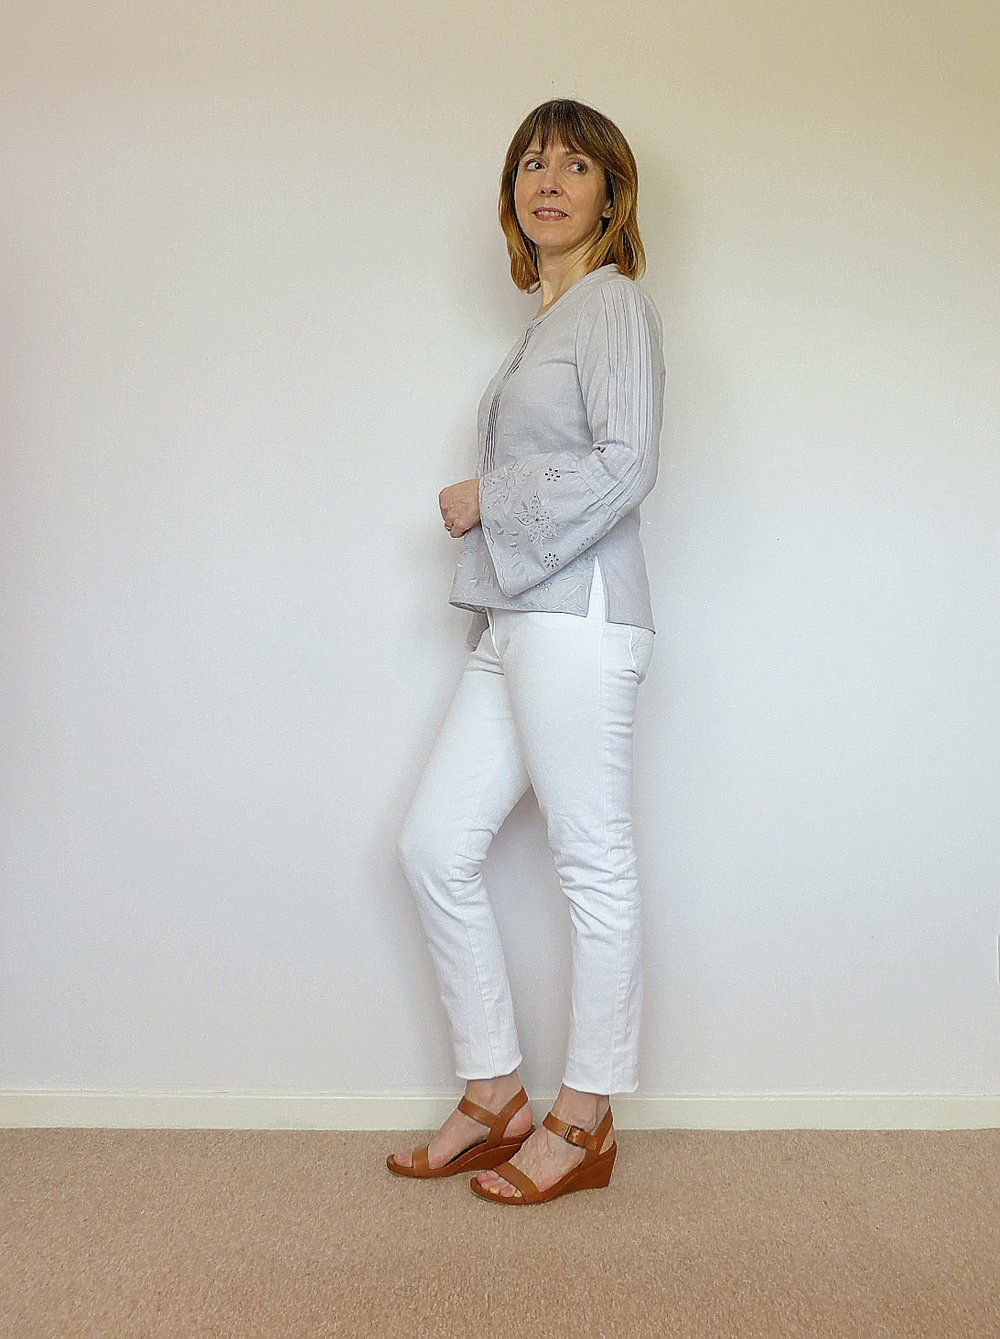 How to....tucks and box pleat sleeve details